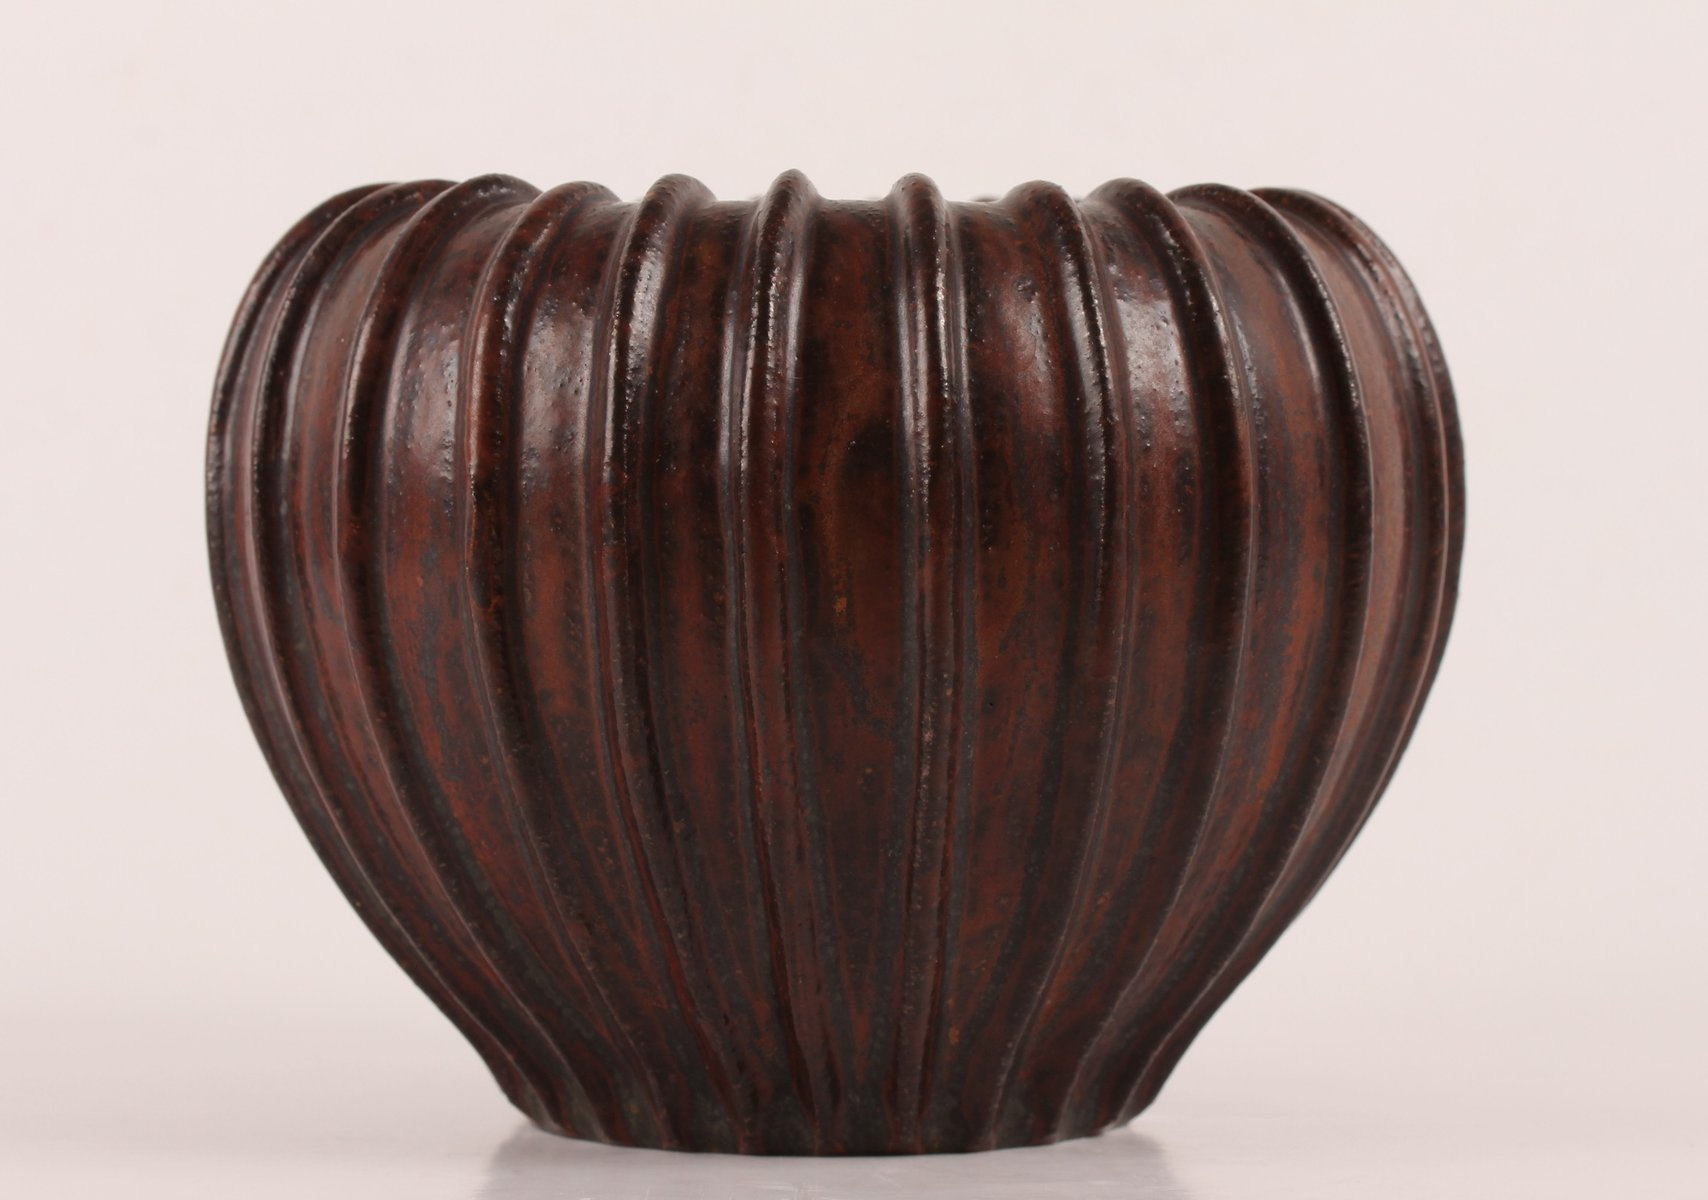 Art deco round brown ceramic vase by arne bang 1930s for sale at previous reviewsmspy